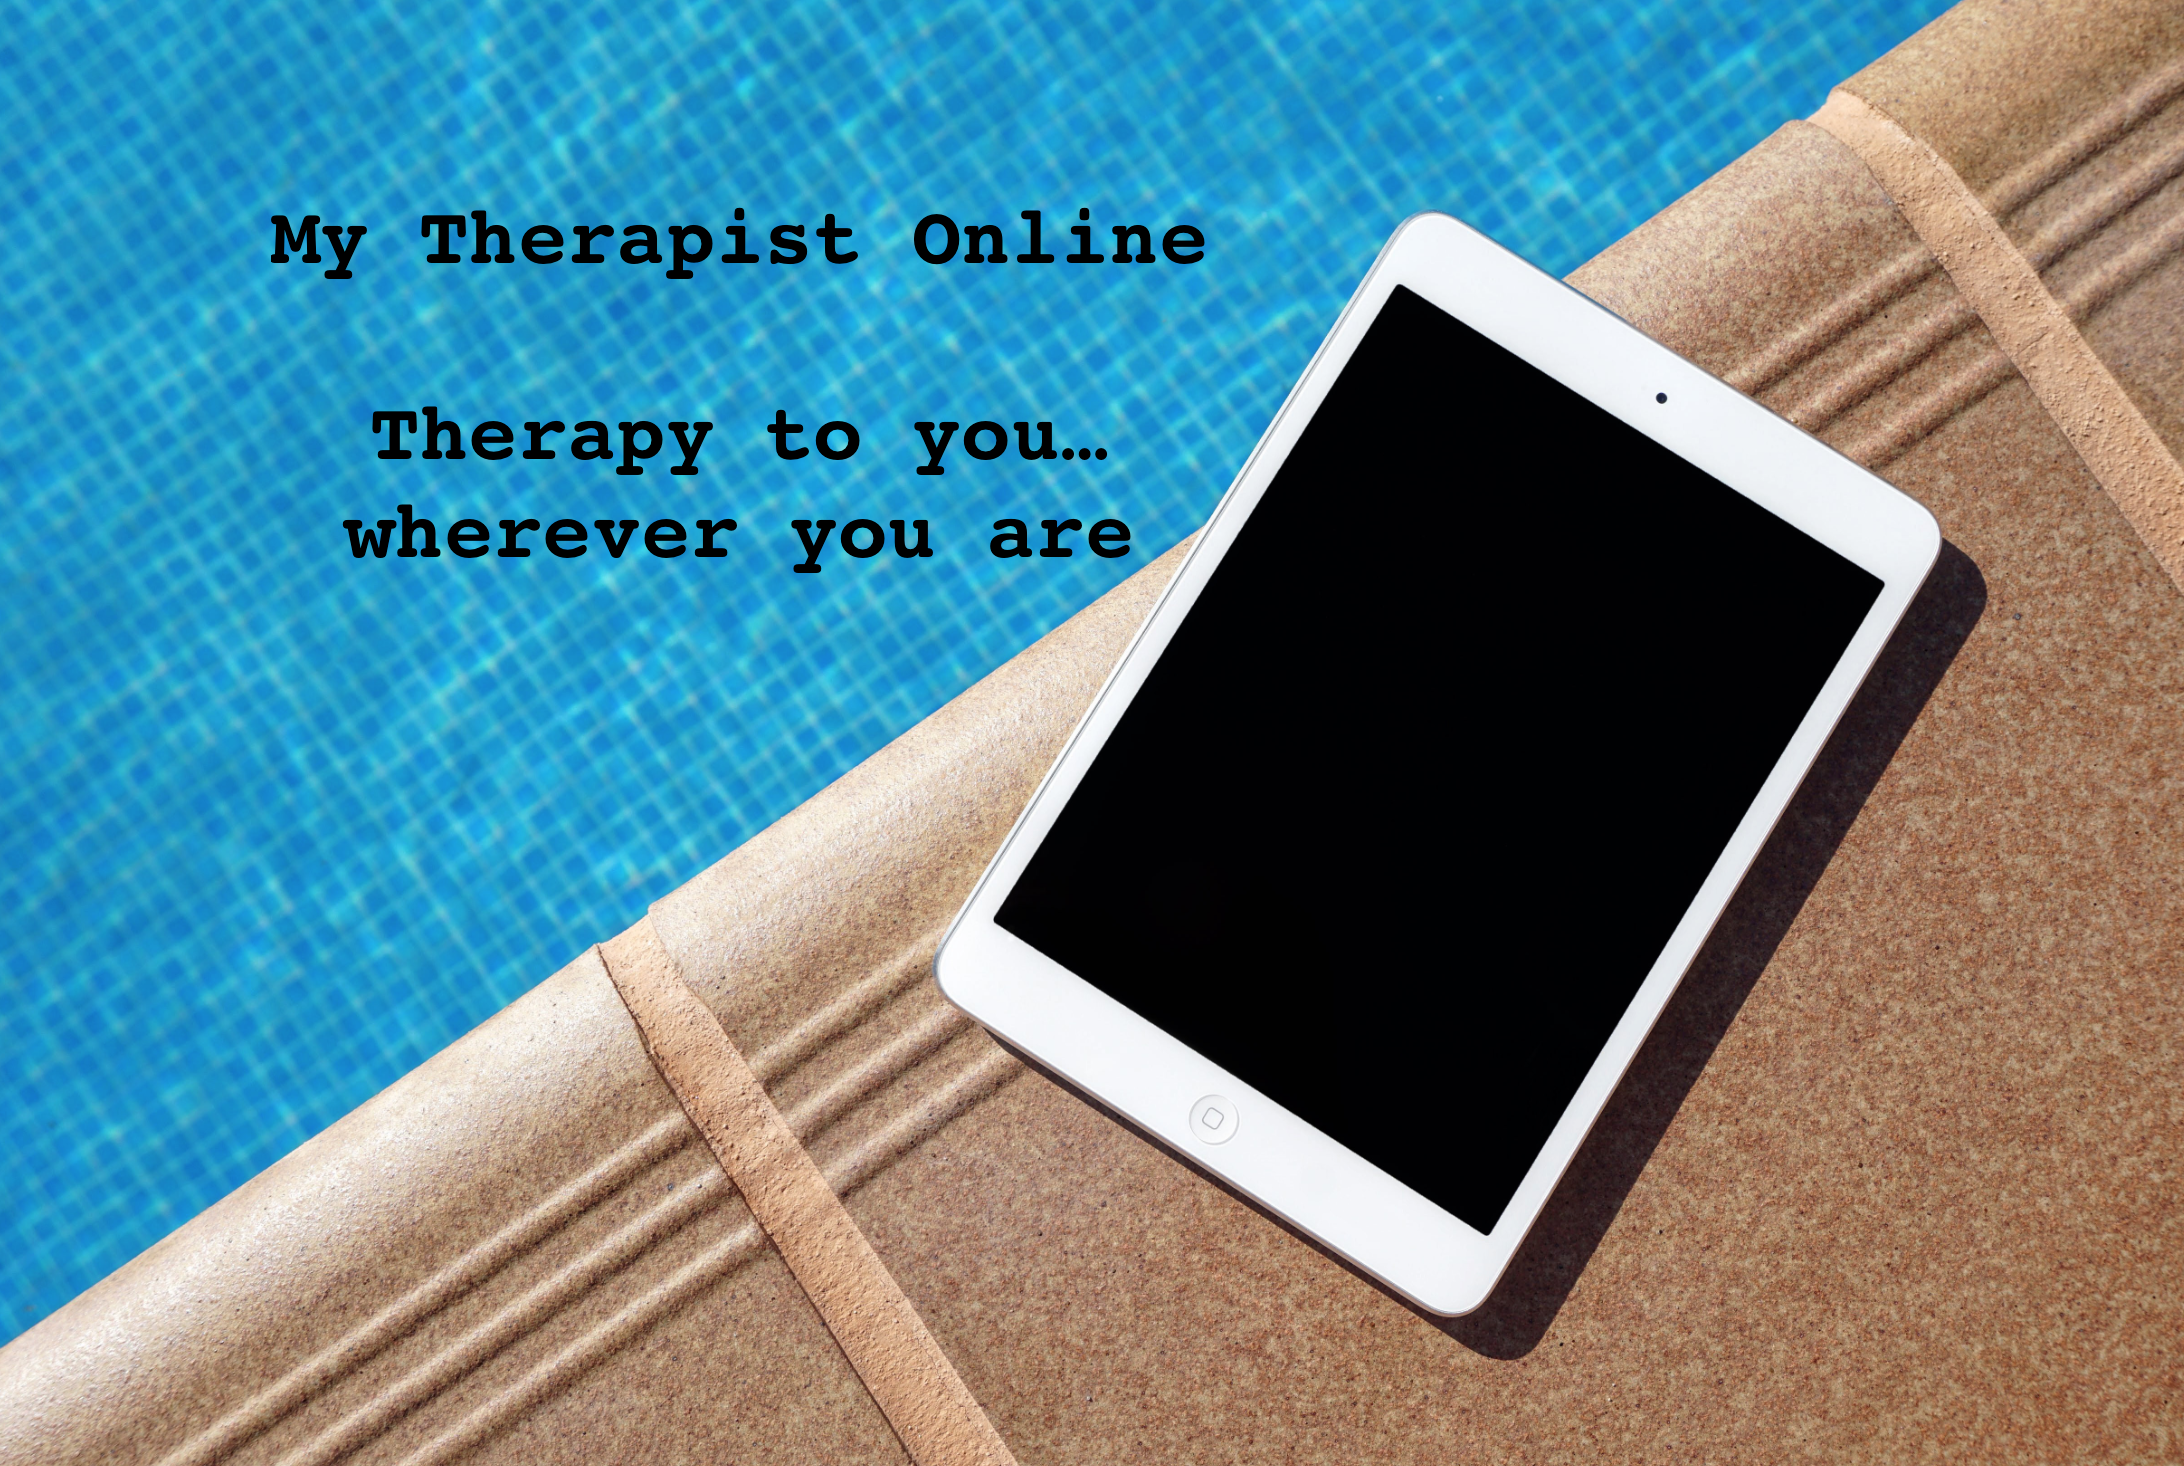 Online Therapy - UK - CBT - My Therapist Online from anywhere